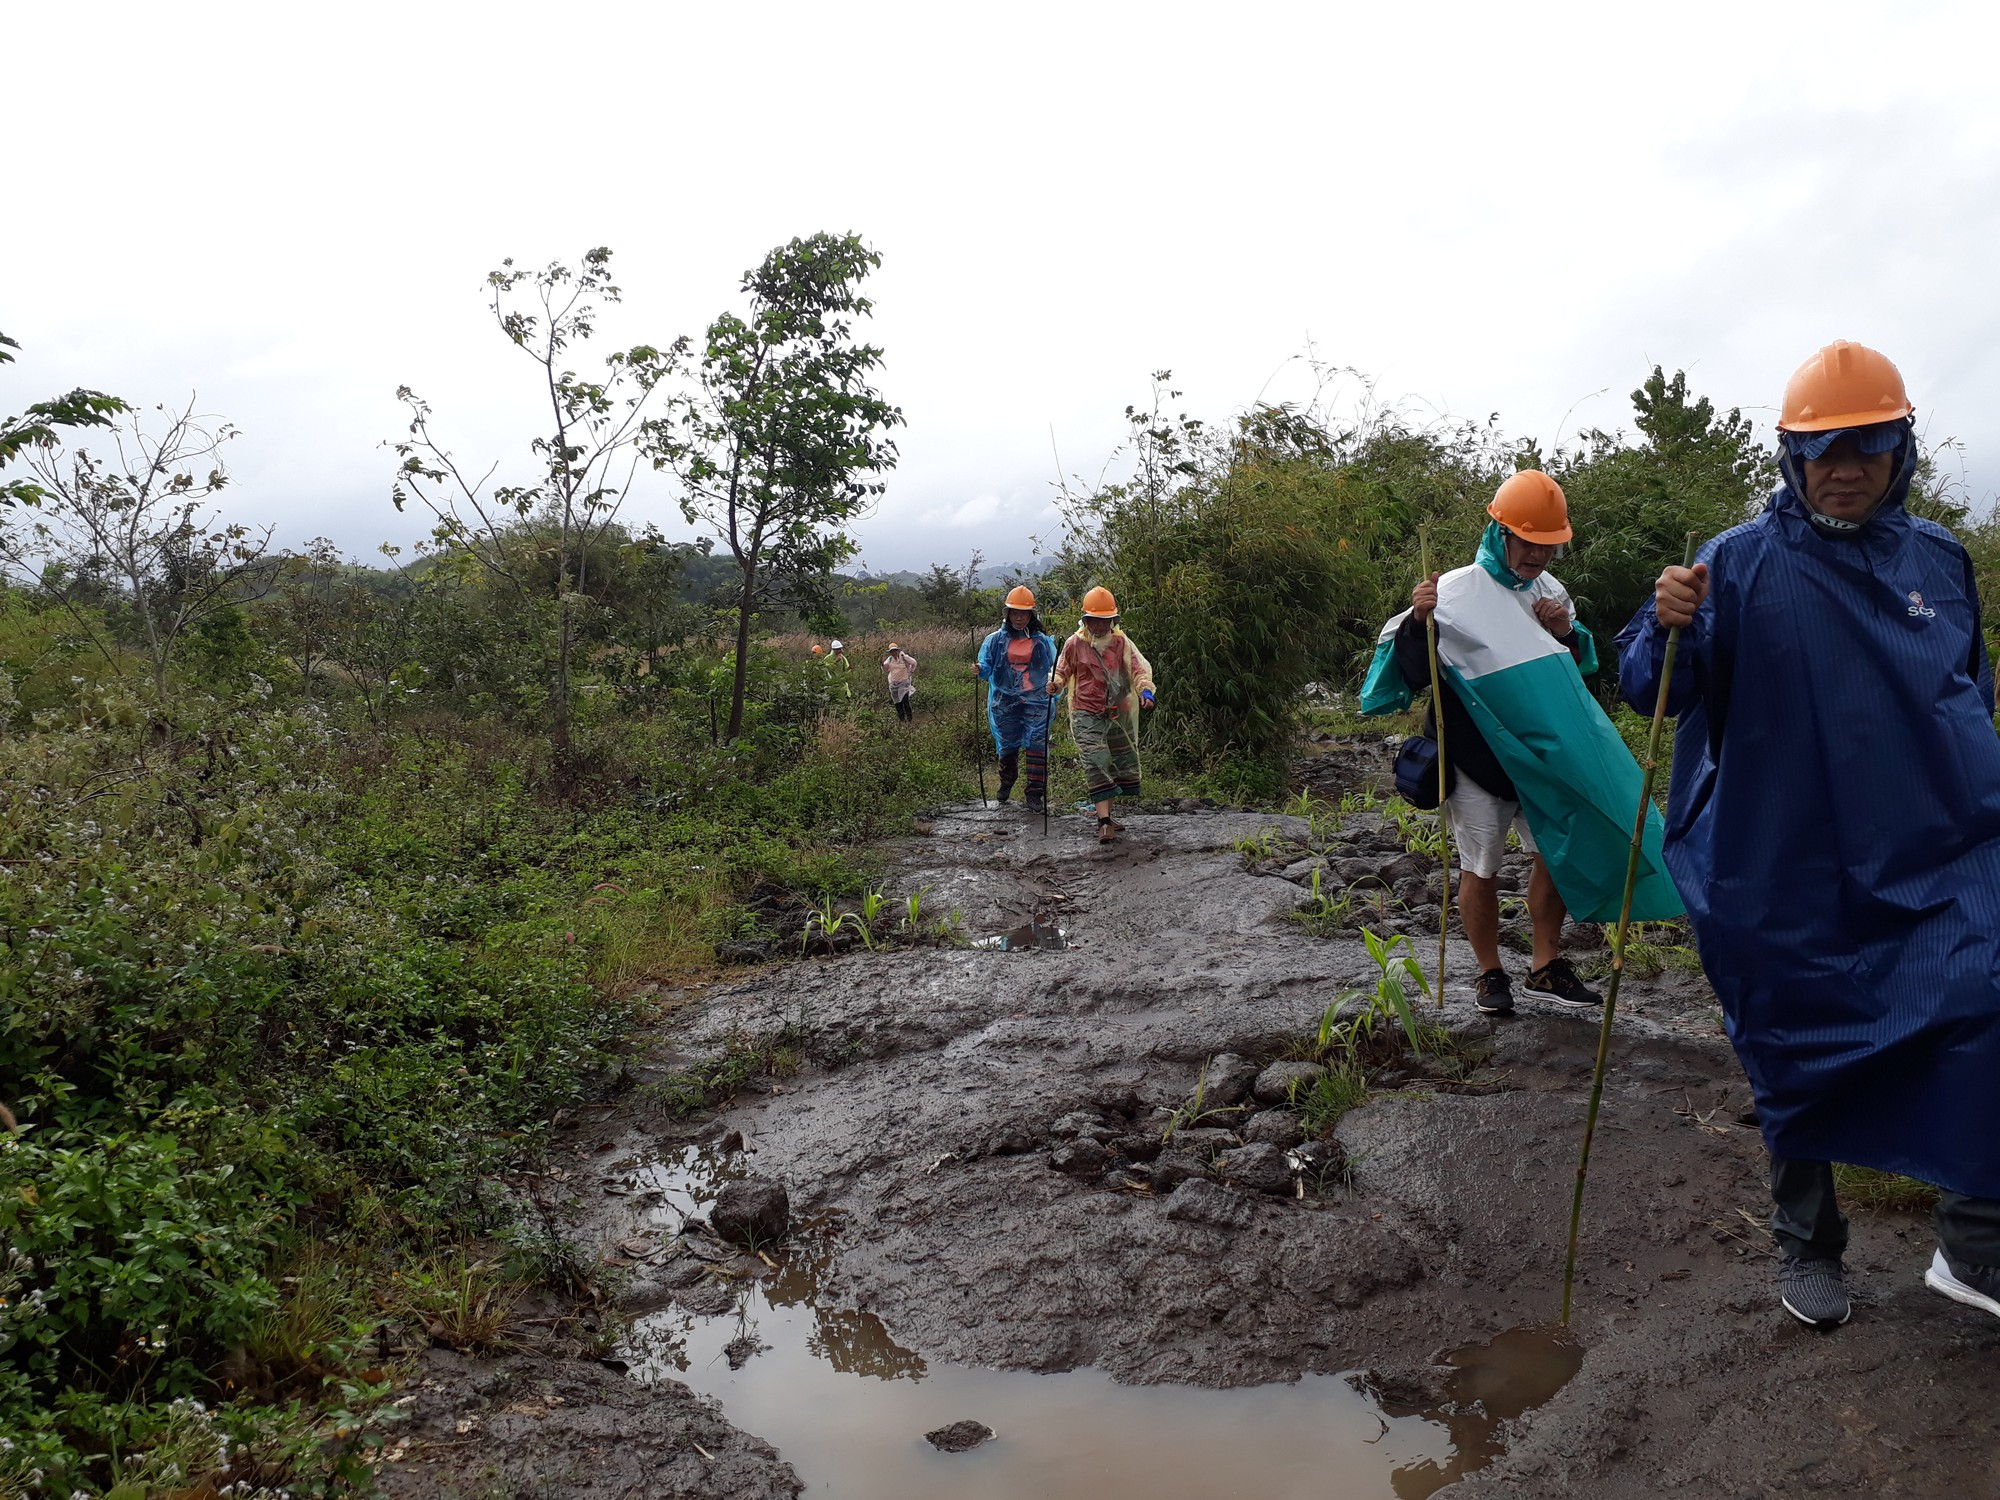 Visitors walk on a path leading to the Chu B'luk (Genesis) volcano in Dak Nong Province, Vietnam's Central Highlands. Photo: Tuoi Tre